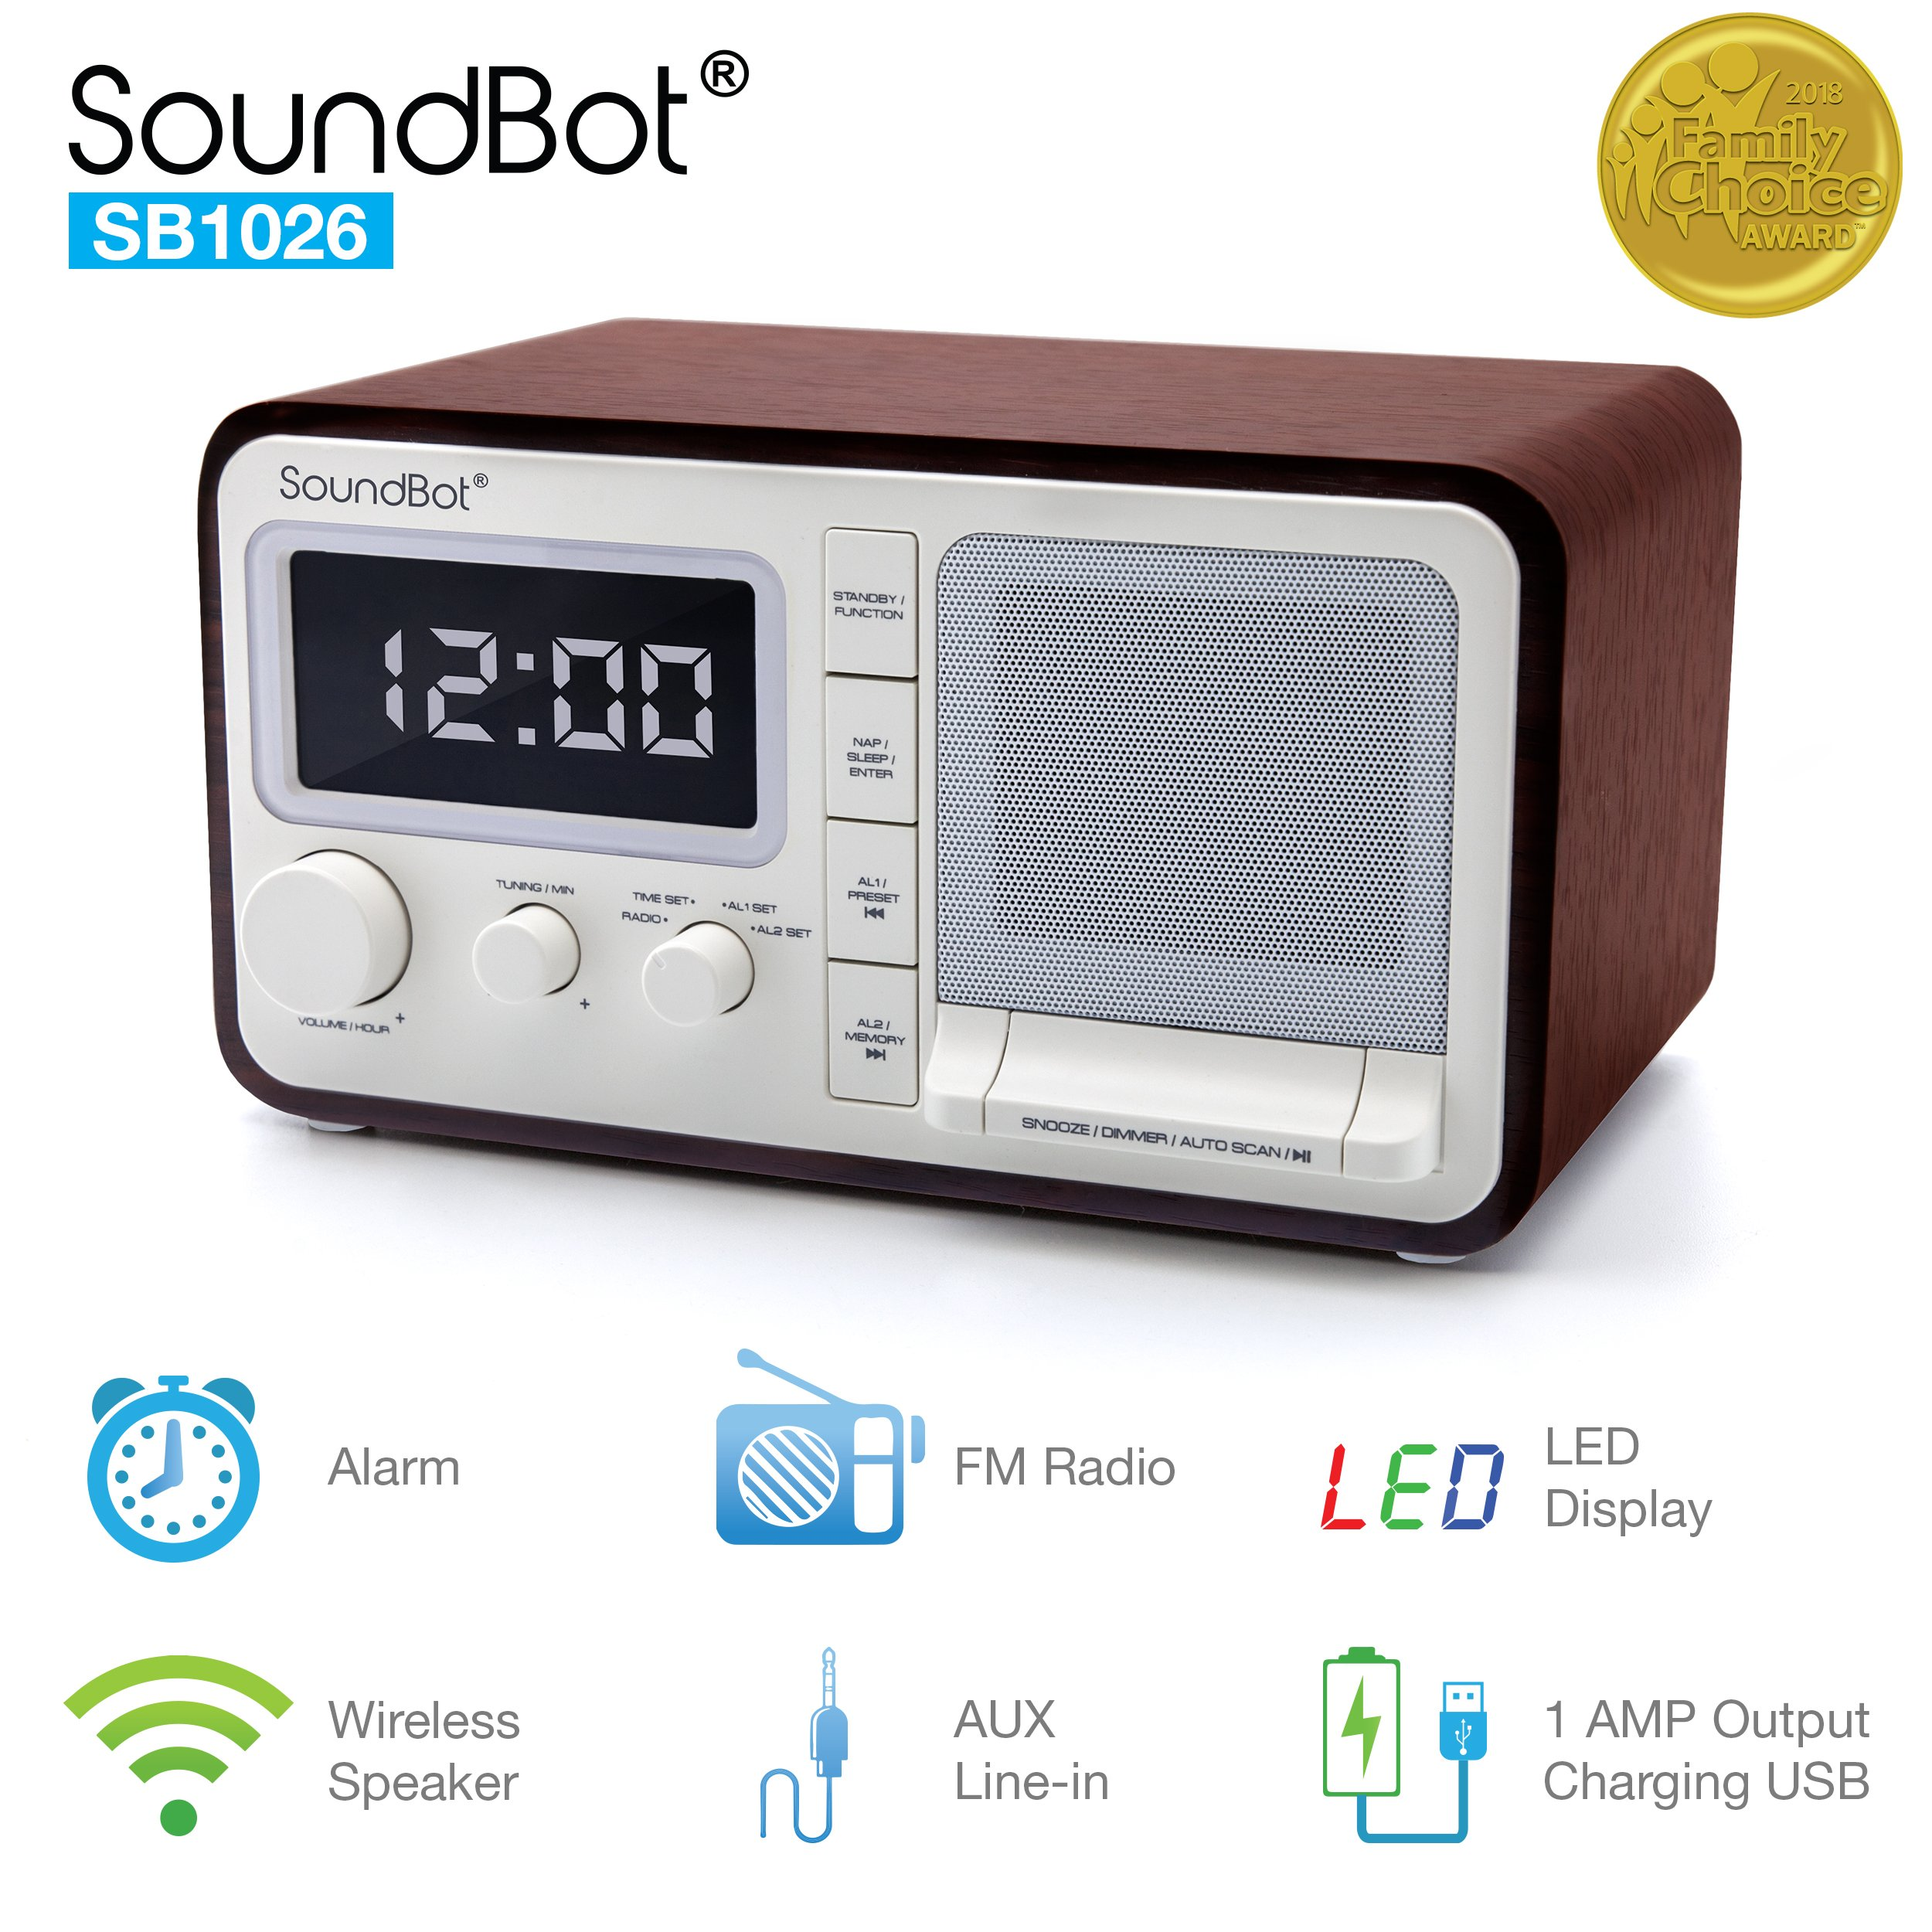 SoundBot Dual Alarm Clock FM Radio Bluetooth Wireless Portable Speaker 3W Output, 1A USB Charging Port, 30 Preset Station, 12/24 Hour Mode Acoustic Premium Driver Hi/Low Dimmer, 3.5mm Aux Port SB1026